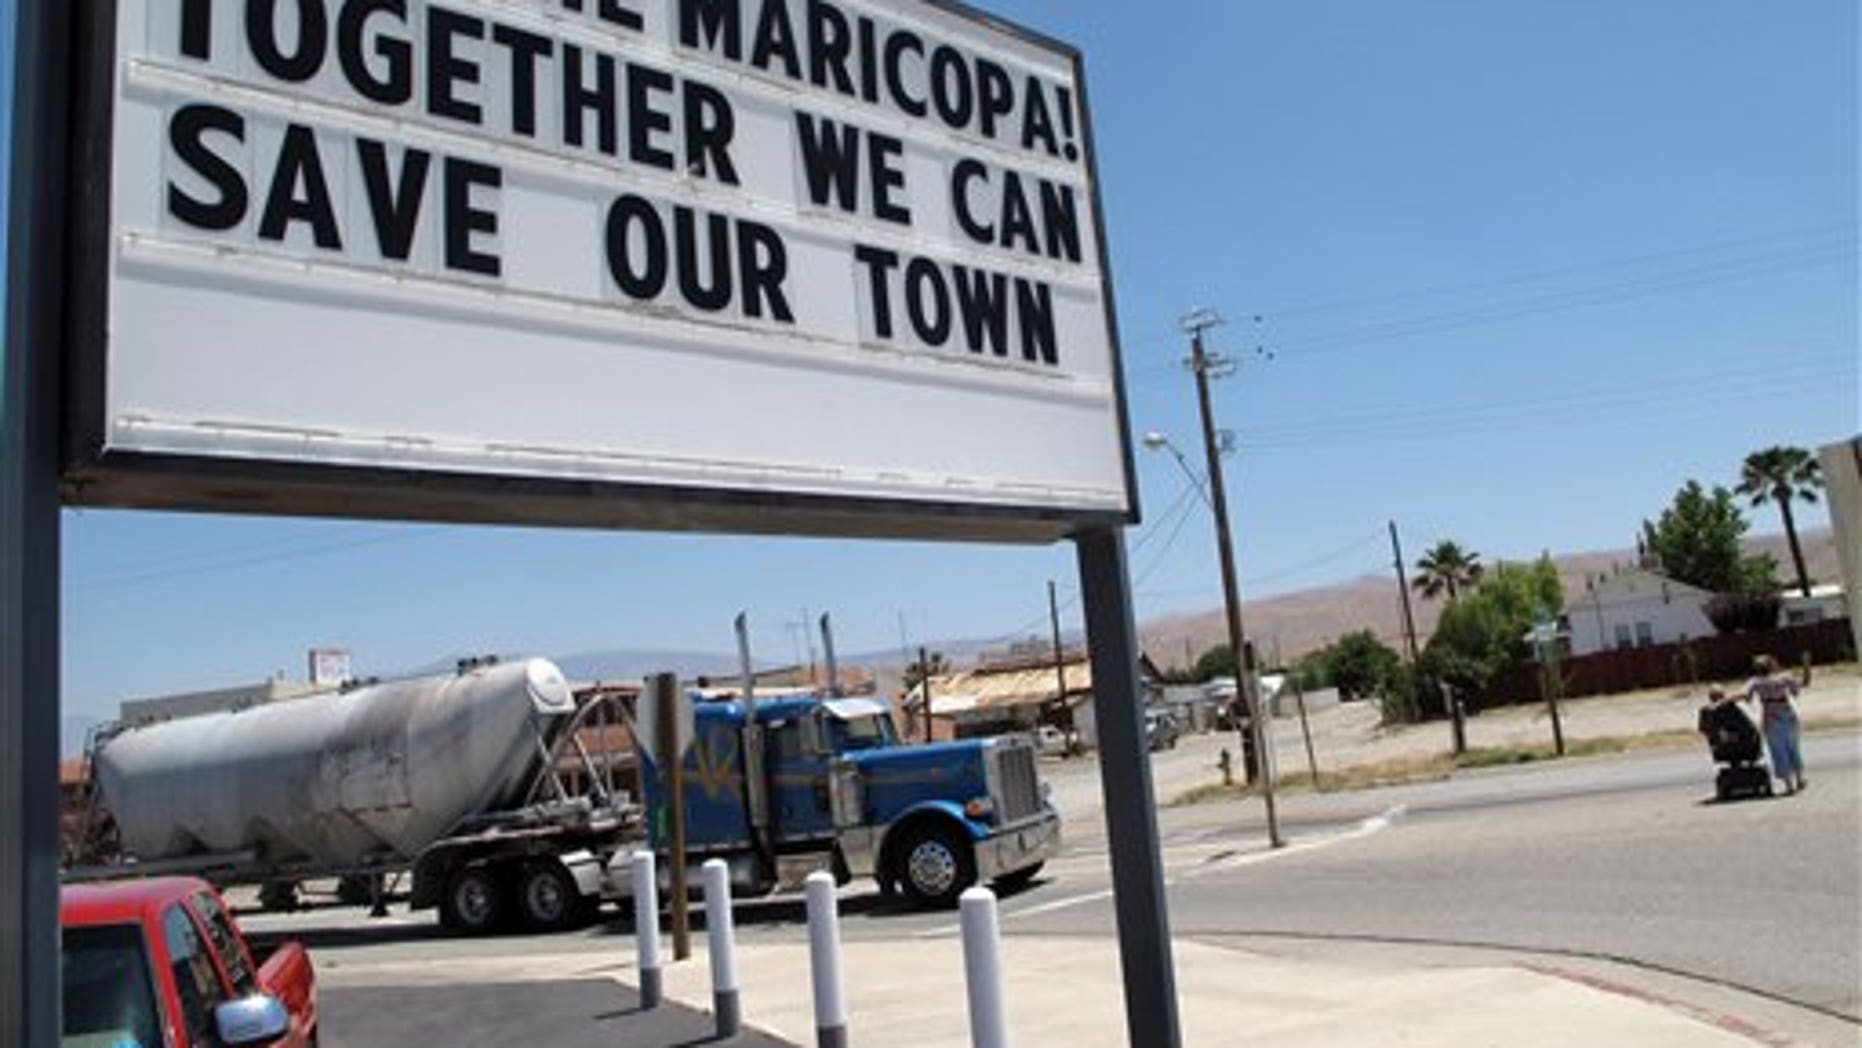 In this photo taken June 13, 2011, a sign is seen outside of the Shell gas station in Maricopa, Calif.  Its own county grand jury has recommended that this tiny San Joaquin Valley community be dissolved because It's too poor to be a town anymore. Though surrounded by oil derricks, the Kern Coiunty community is hopelessly in debt, can't pay its bills and has no source of revenue to contribute to a recovery. (AP Photo/Tracie Cone)